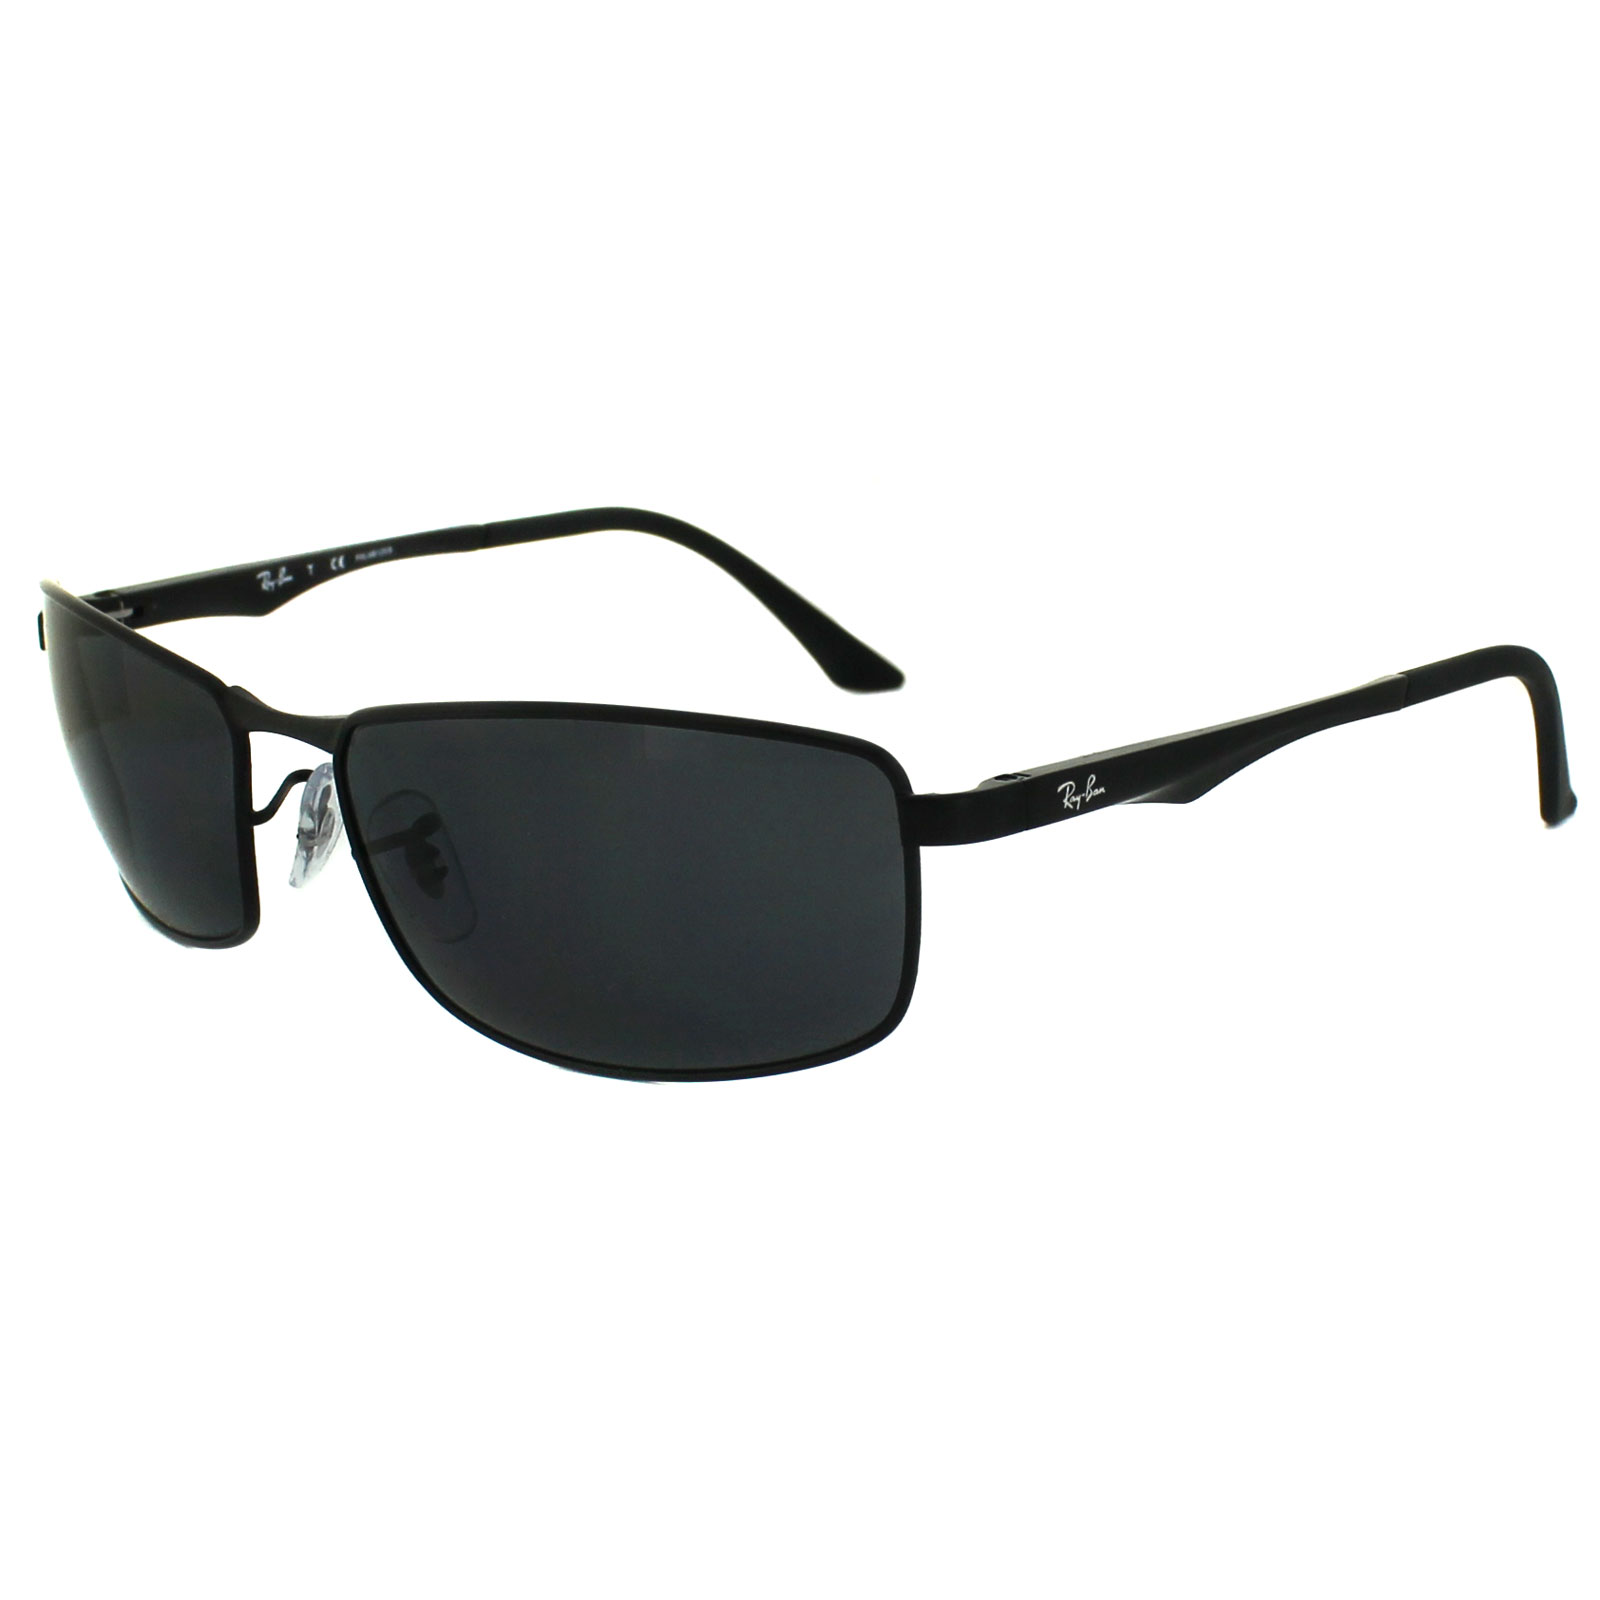 Ray-Ban RB 3498 006/81-small OnywO